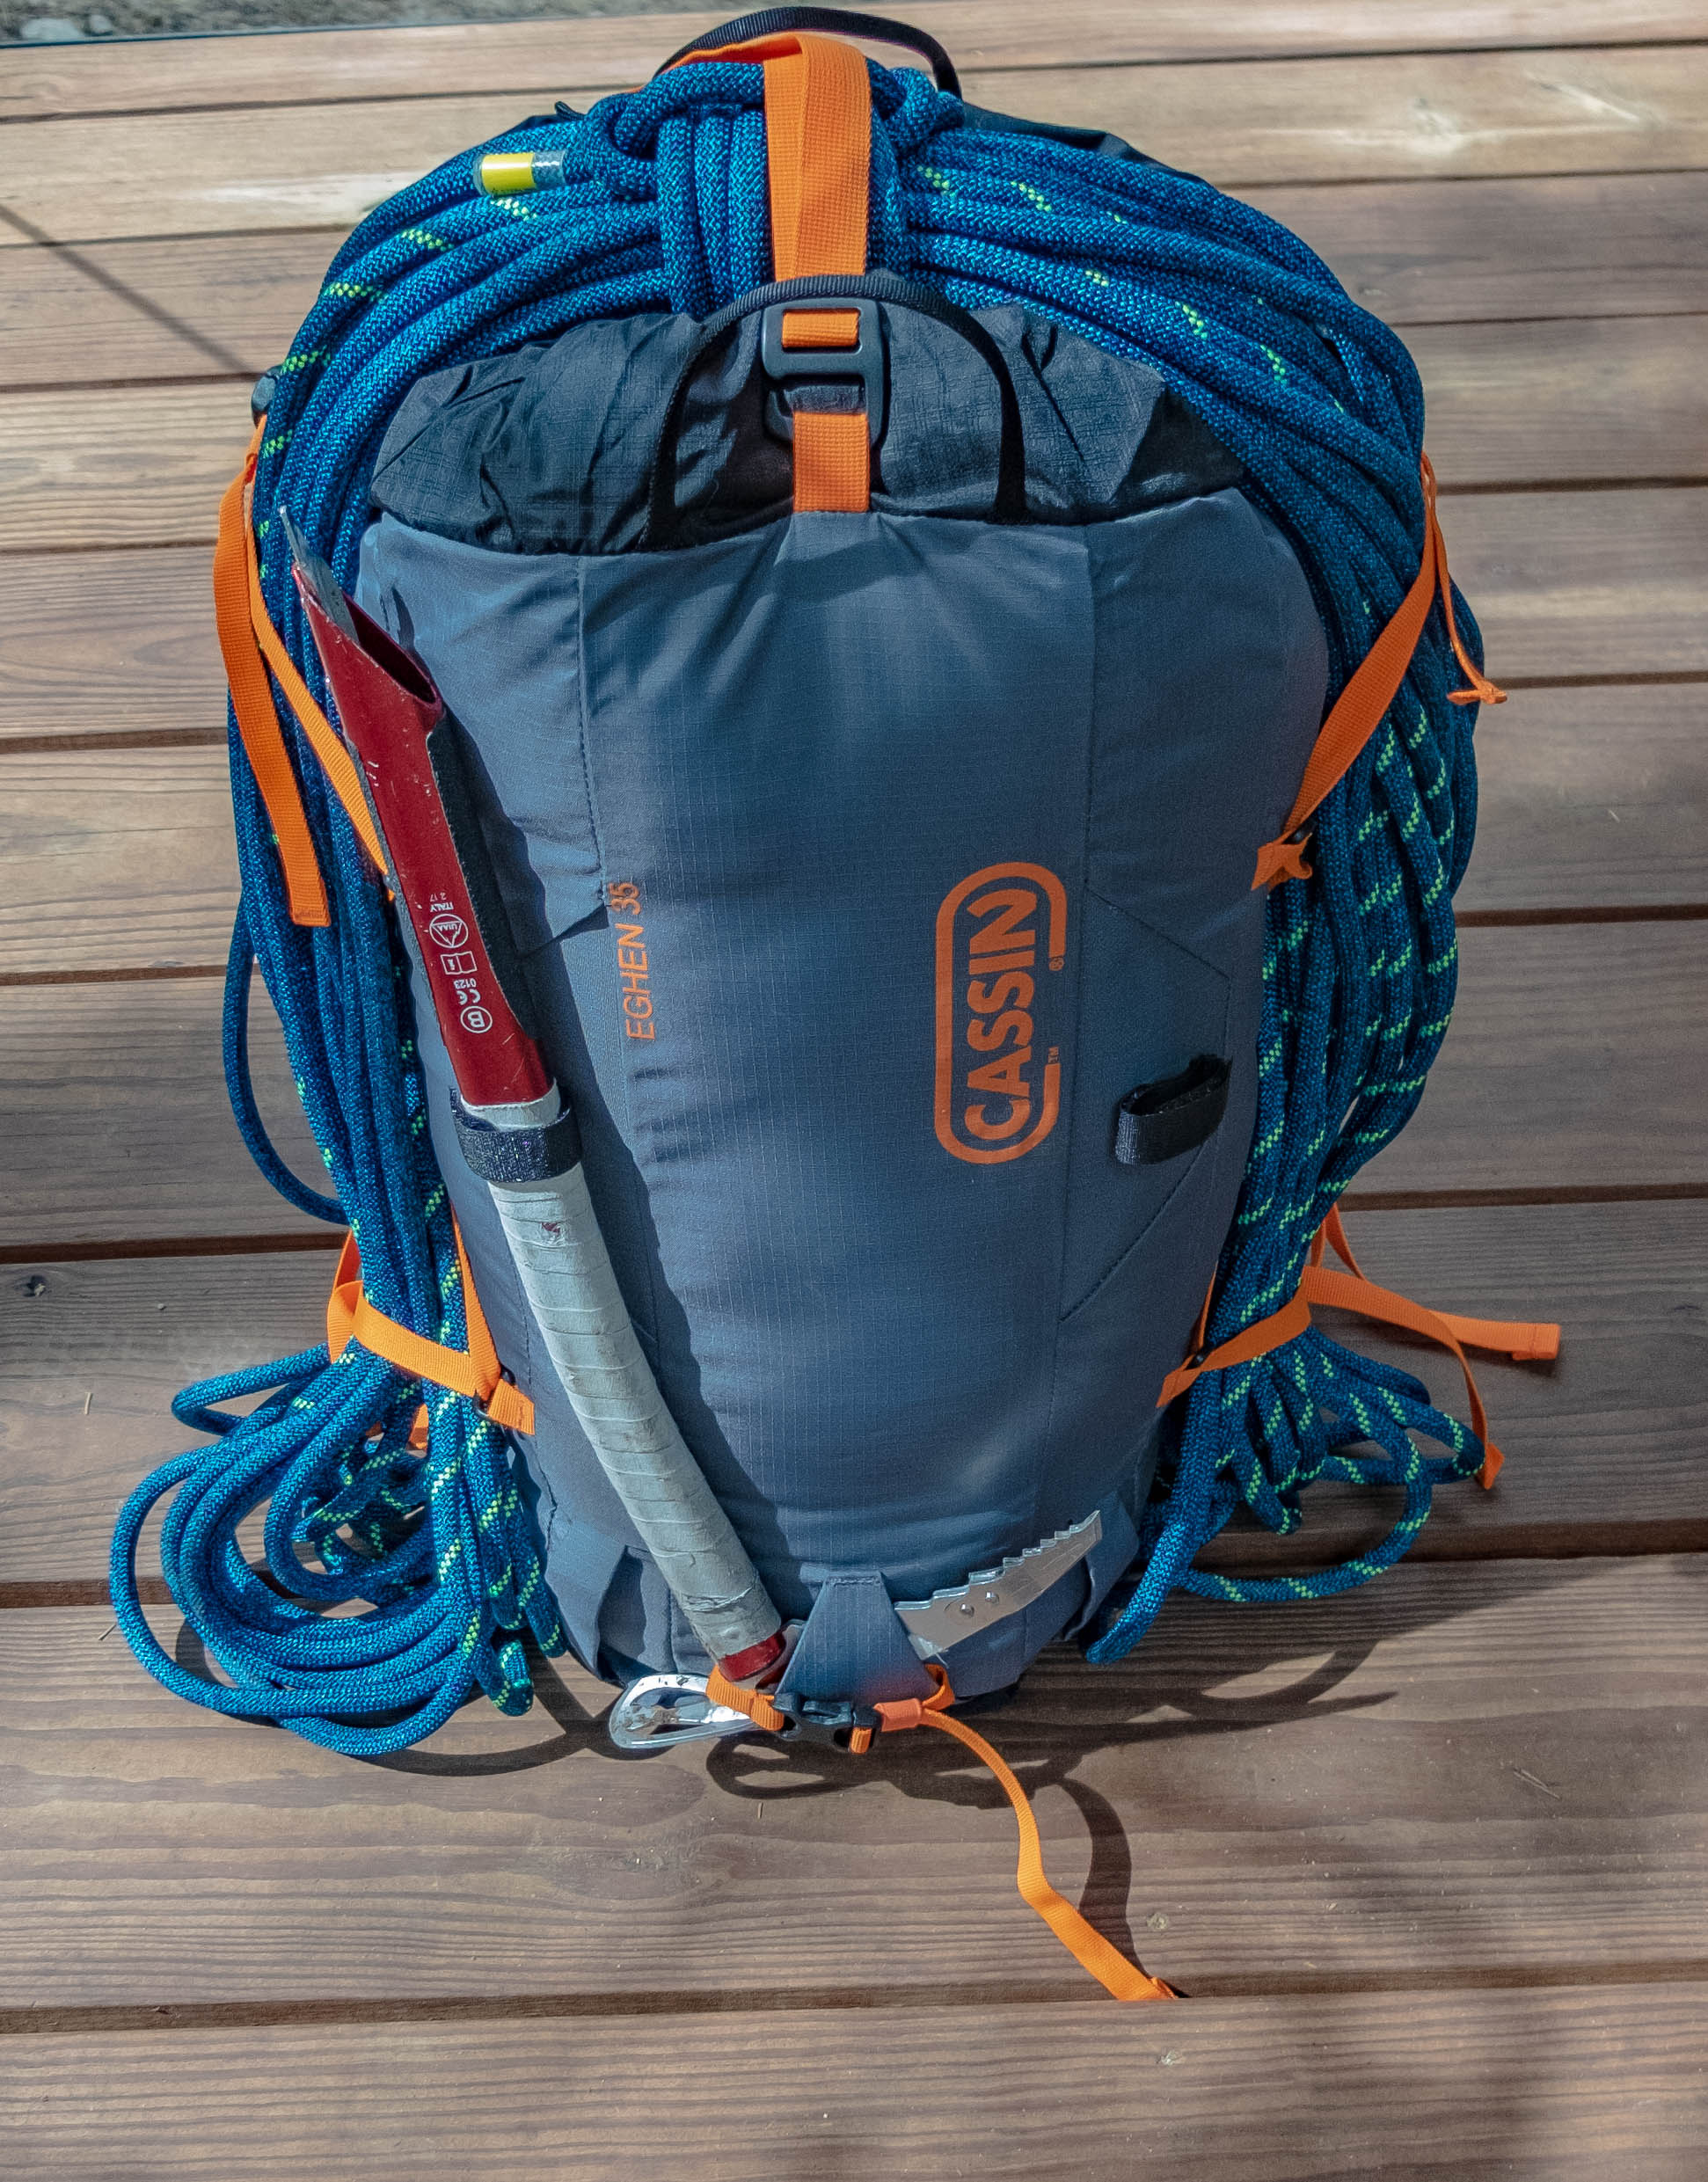 Eghen 35 fully packed for early season alpine climbing